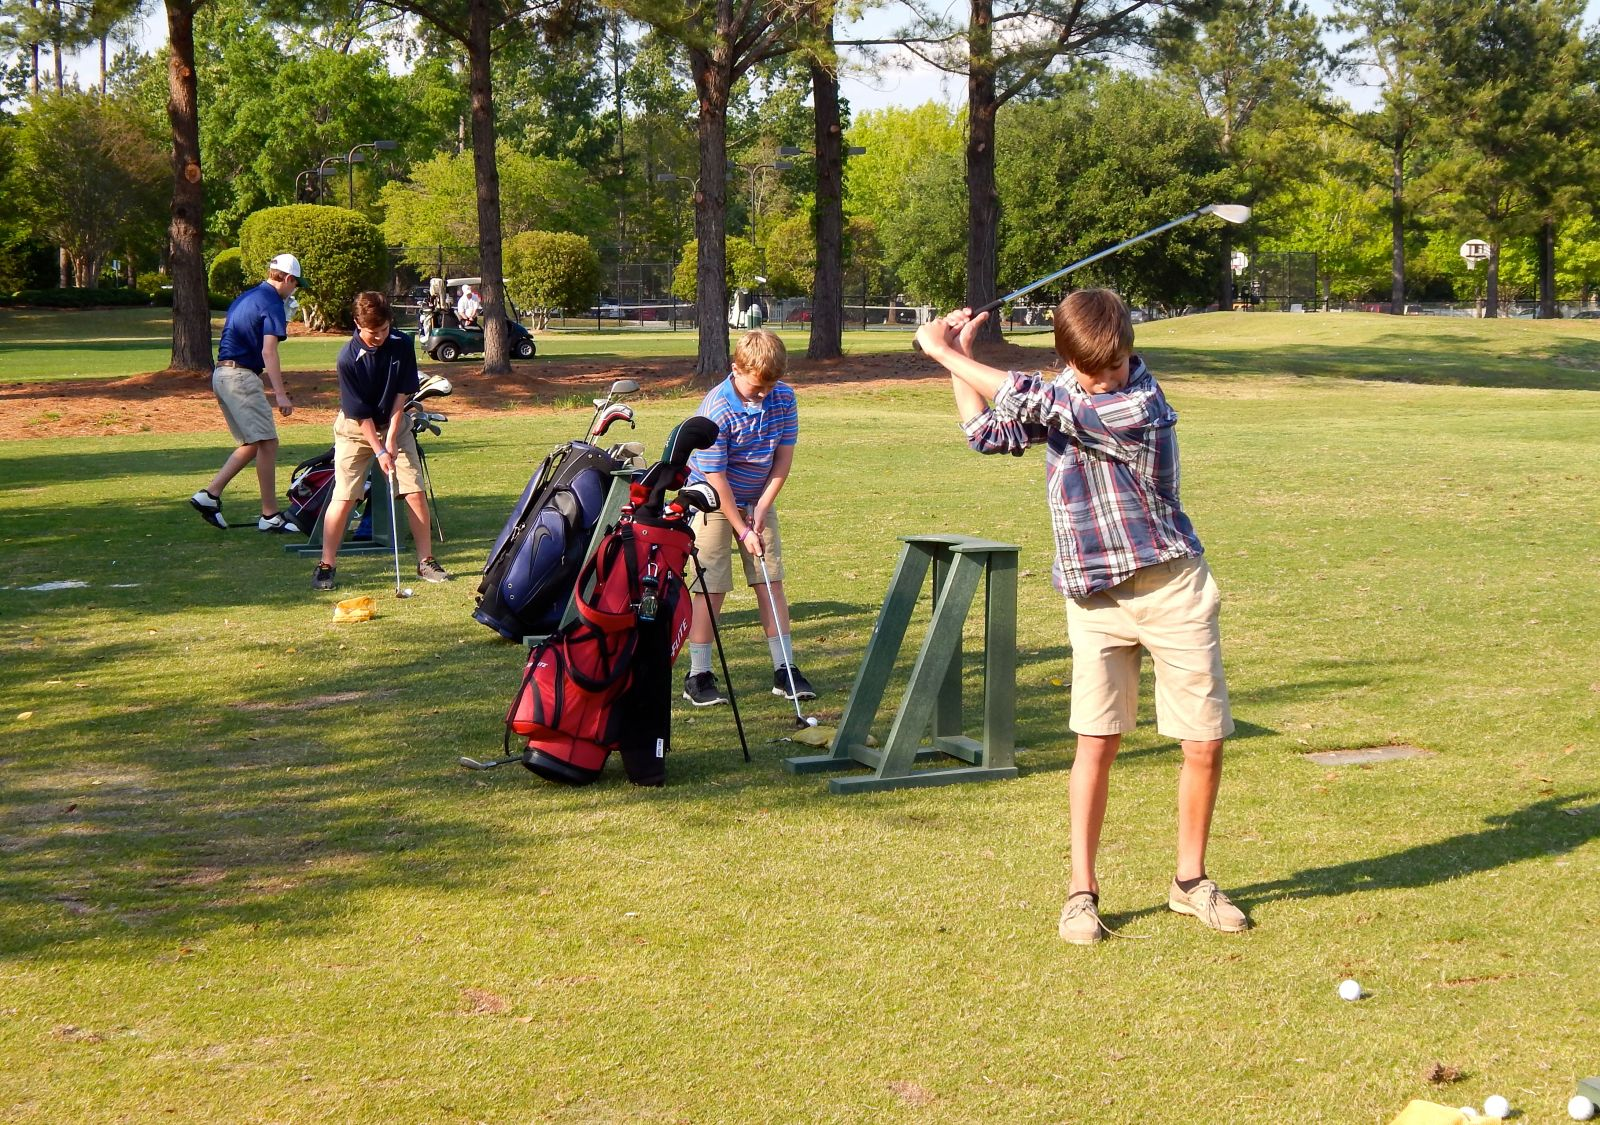 Junior Camps at Coosaw Creek Country Club in North Charleston, SC